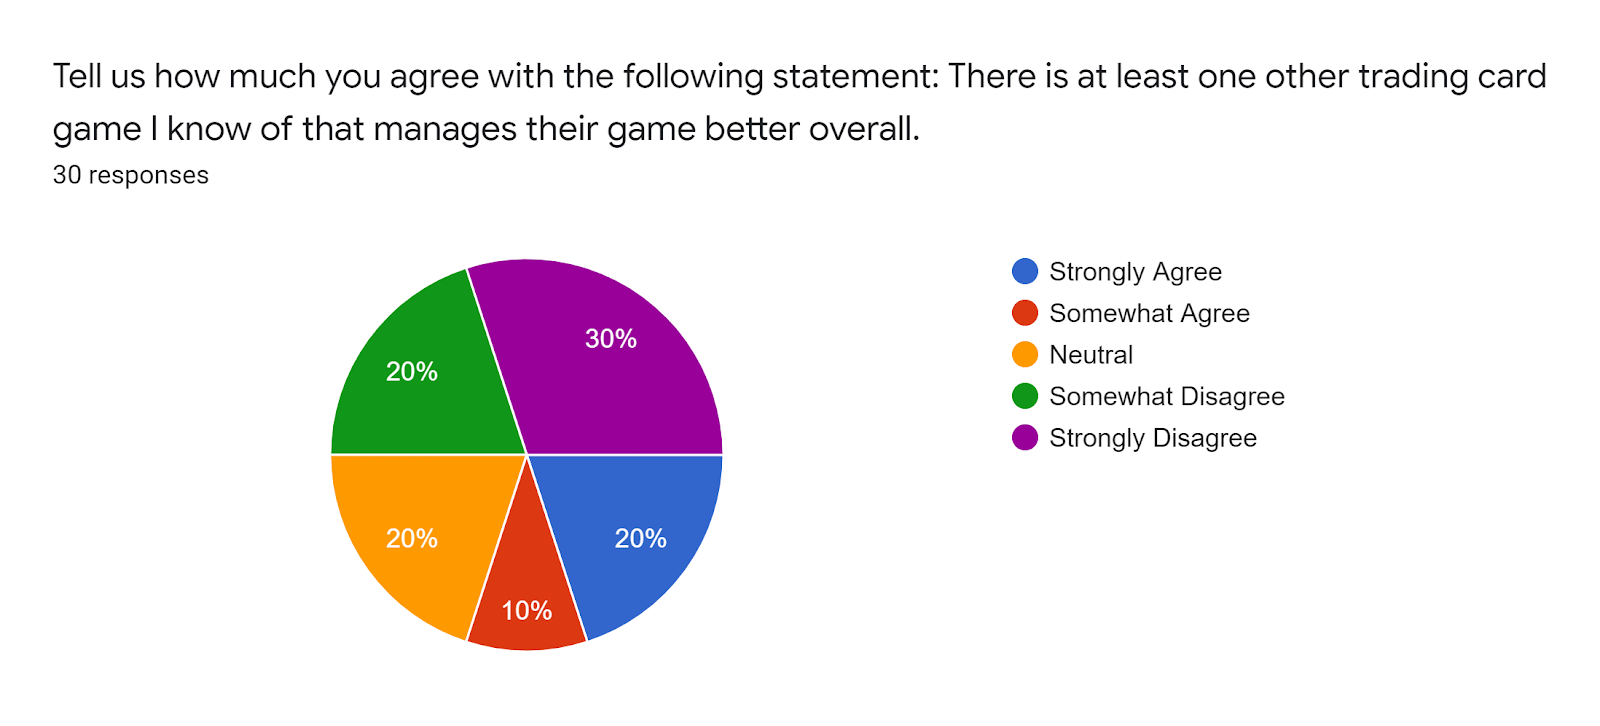 Forms response chart Question title Tell us how much you agree with the following statement There is at least one other trading card game I know of that manages their game better overall Number of responses 30 responses